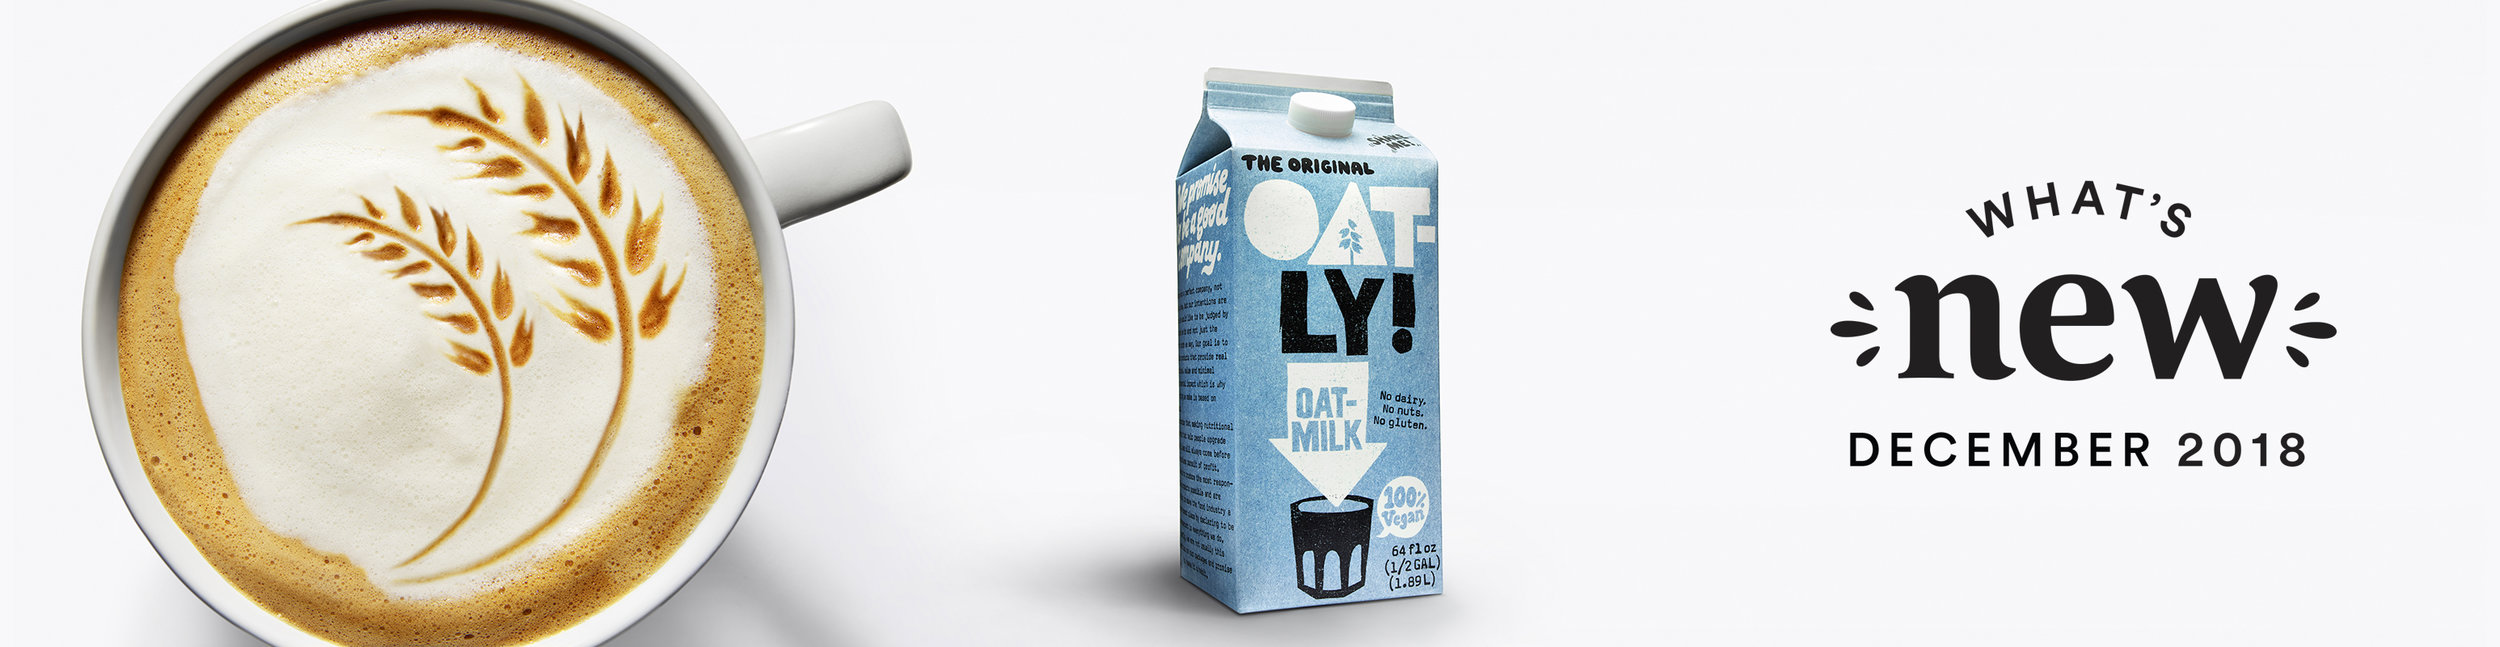 WhatsNew_Dec_Oatly_Banner.jpg